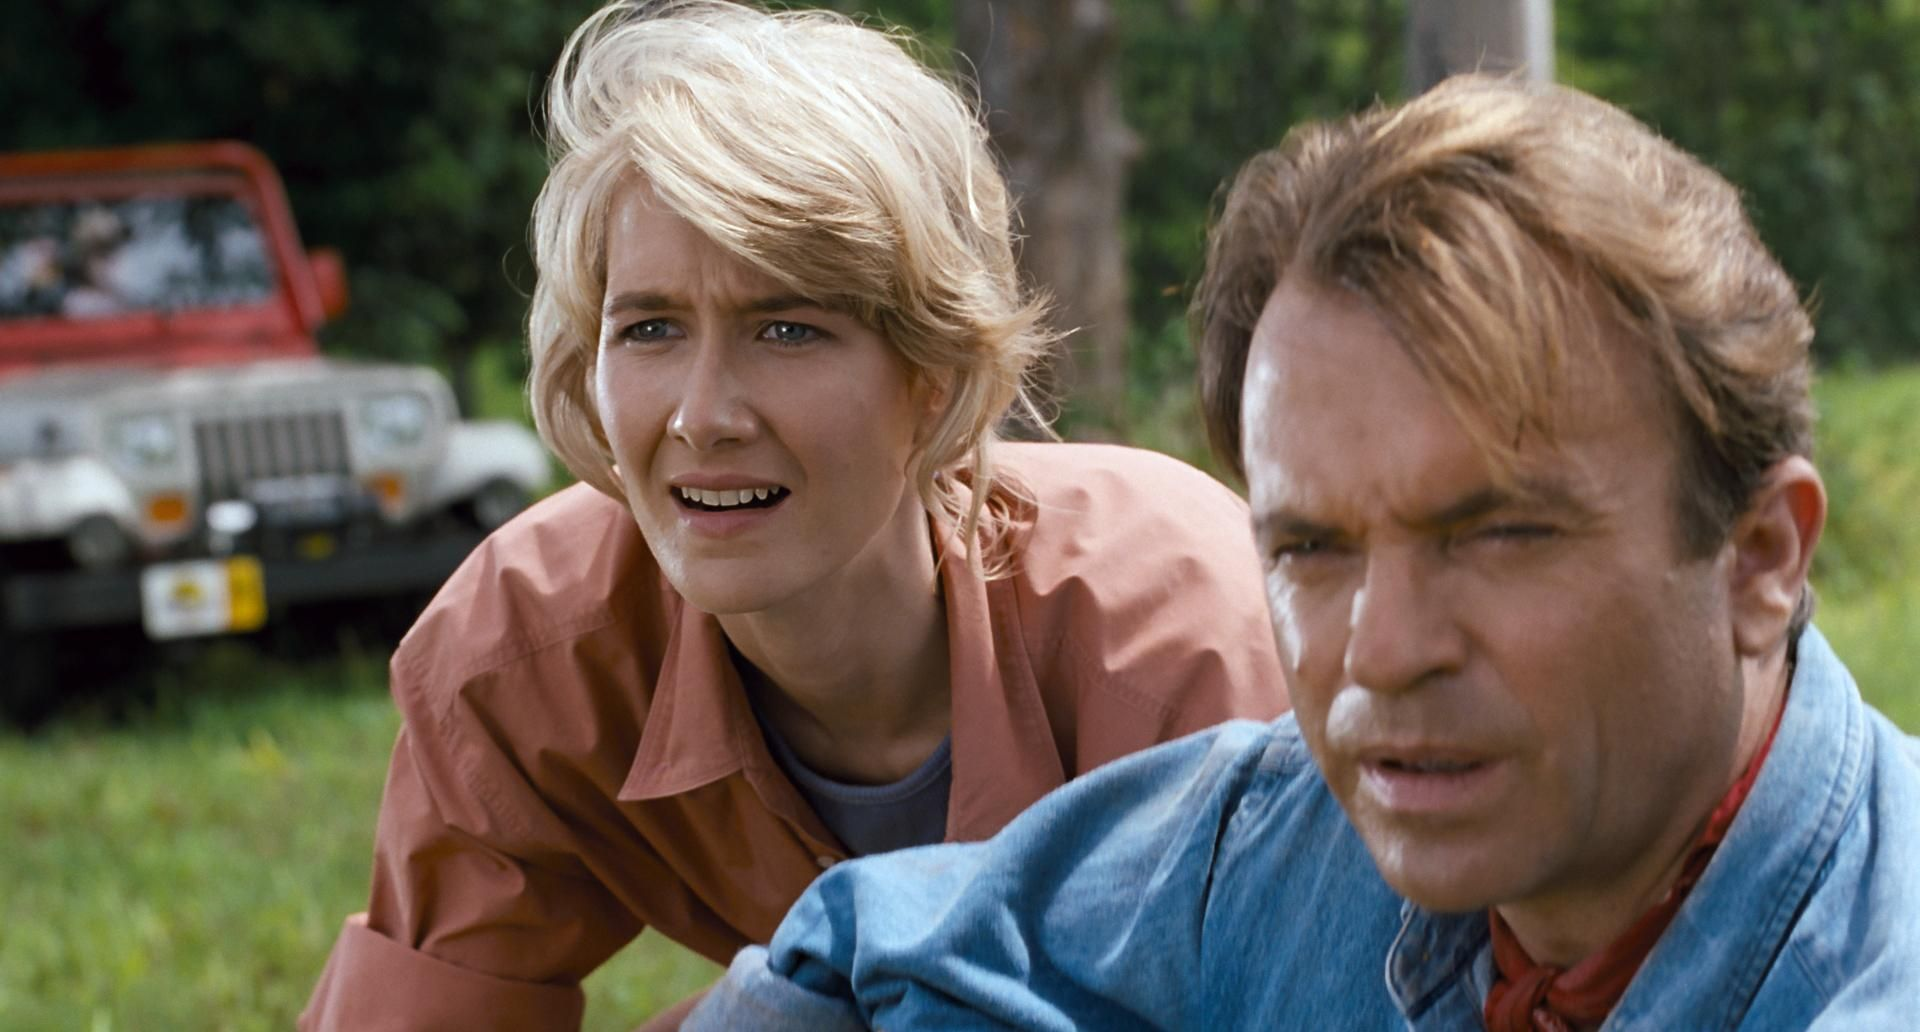 Jurassic Park stars to reunite for Jurassic World 3 Entertainment